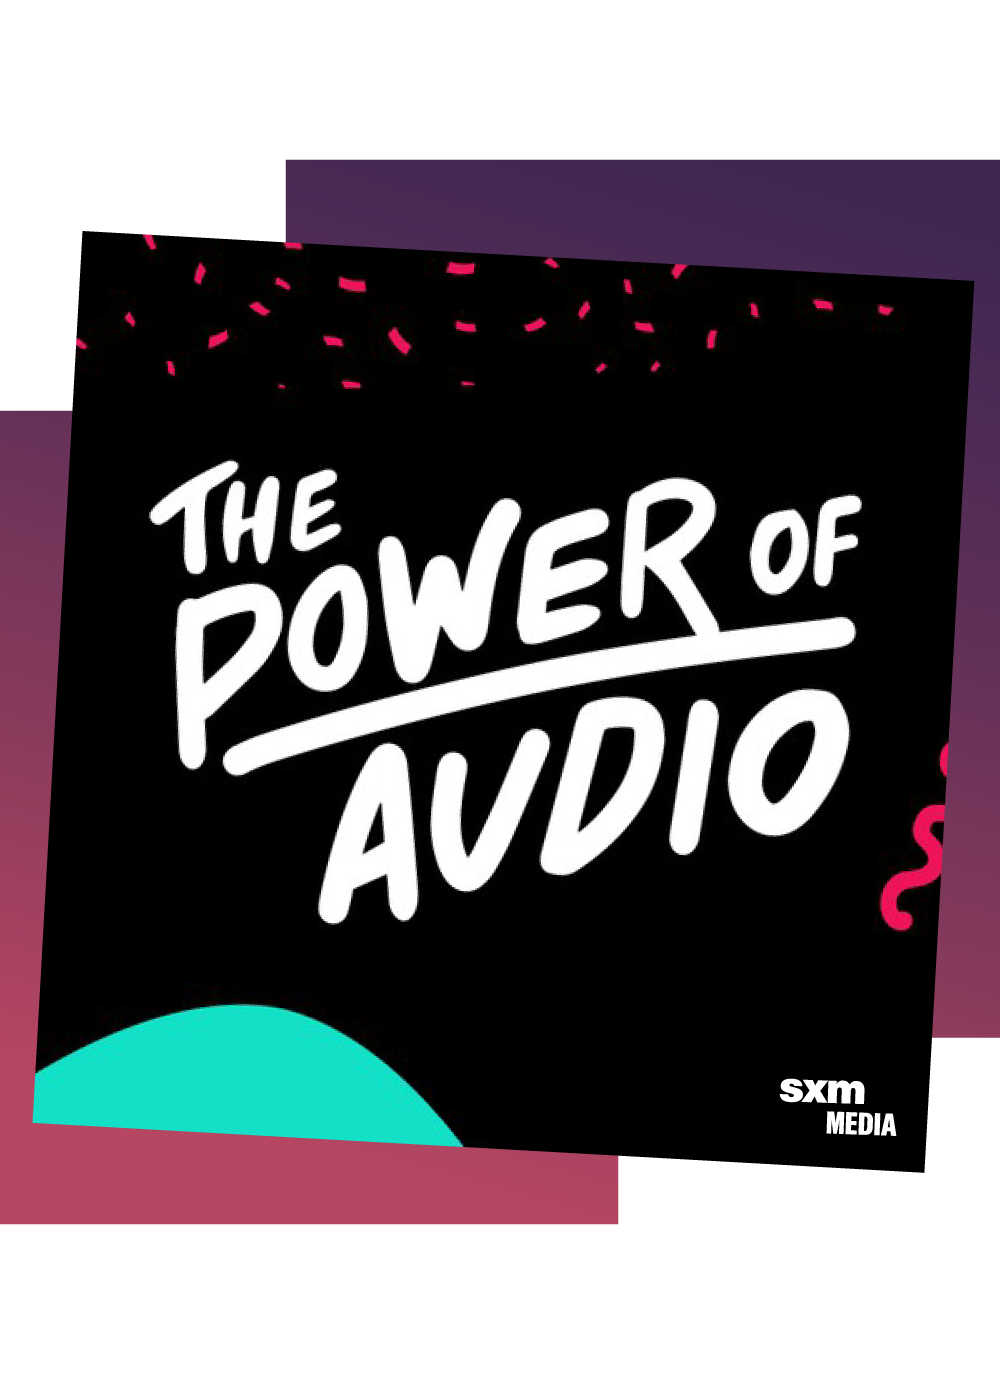 The Power of Audio Podcast - Album Cover - Foreground